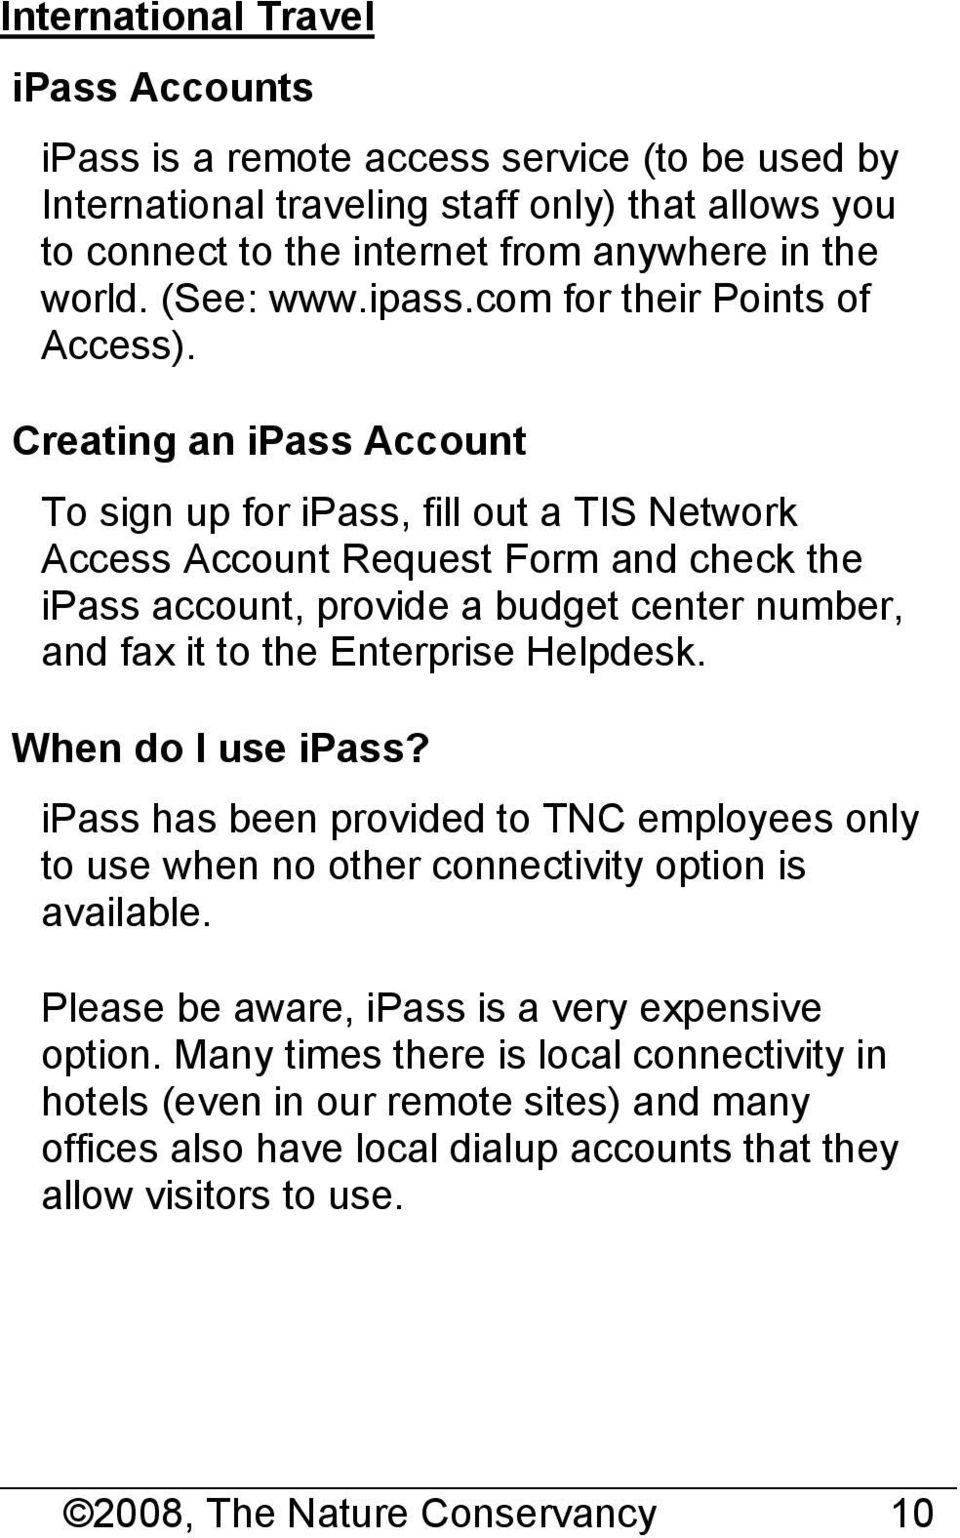 Creating an ipass Account To sign up for ipass, fill out a TIS Network Access Account Request Form and check the ipass account, provide a budget center number, and fax it to the Enterprise Helpdesk.